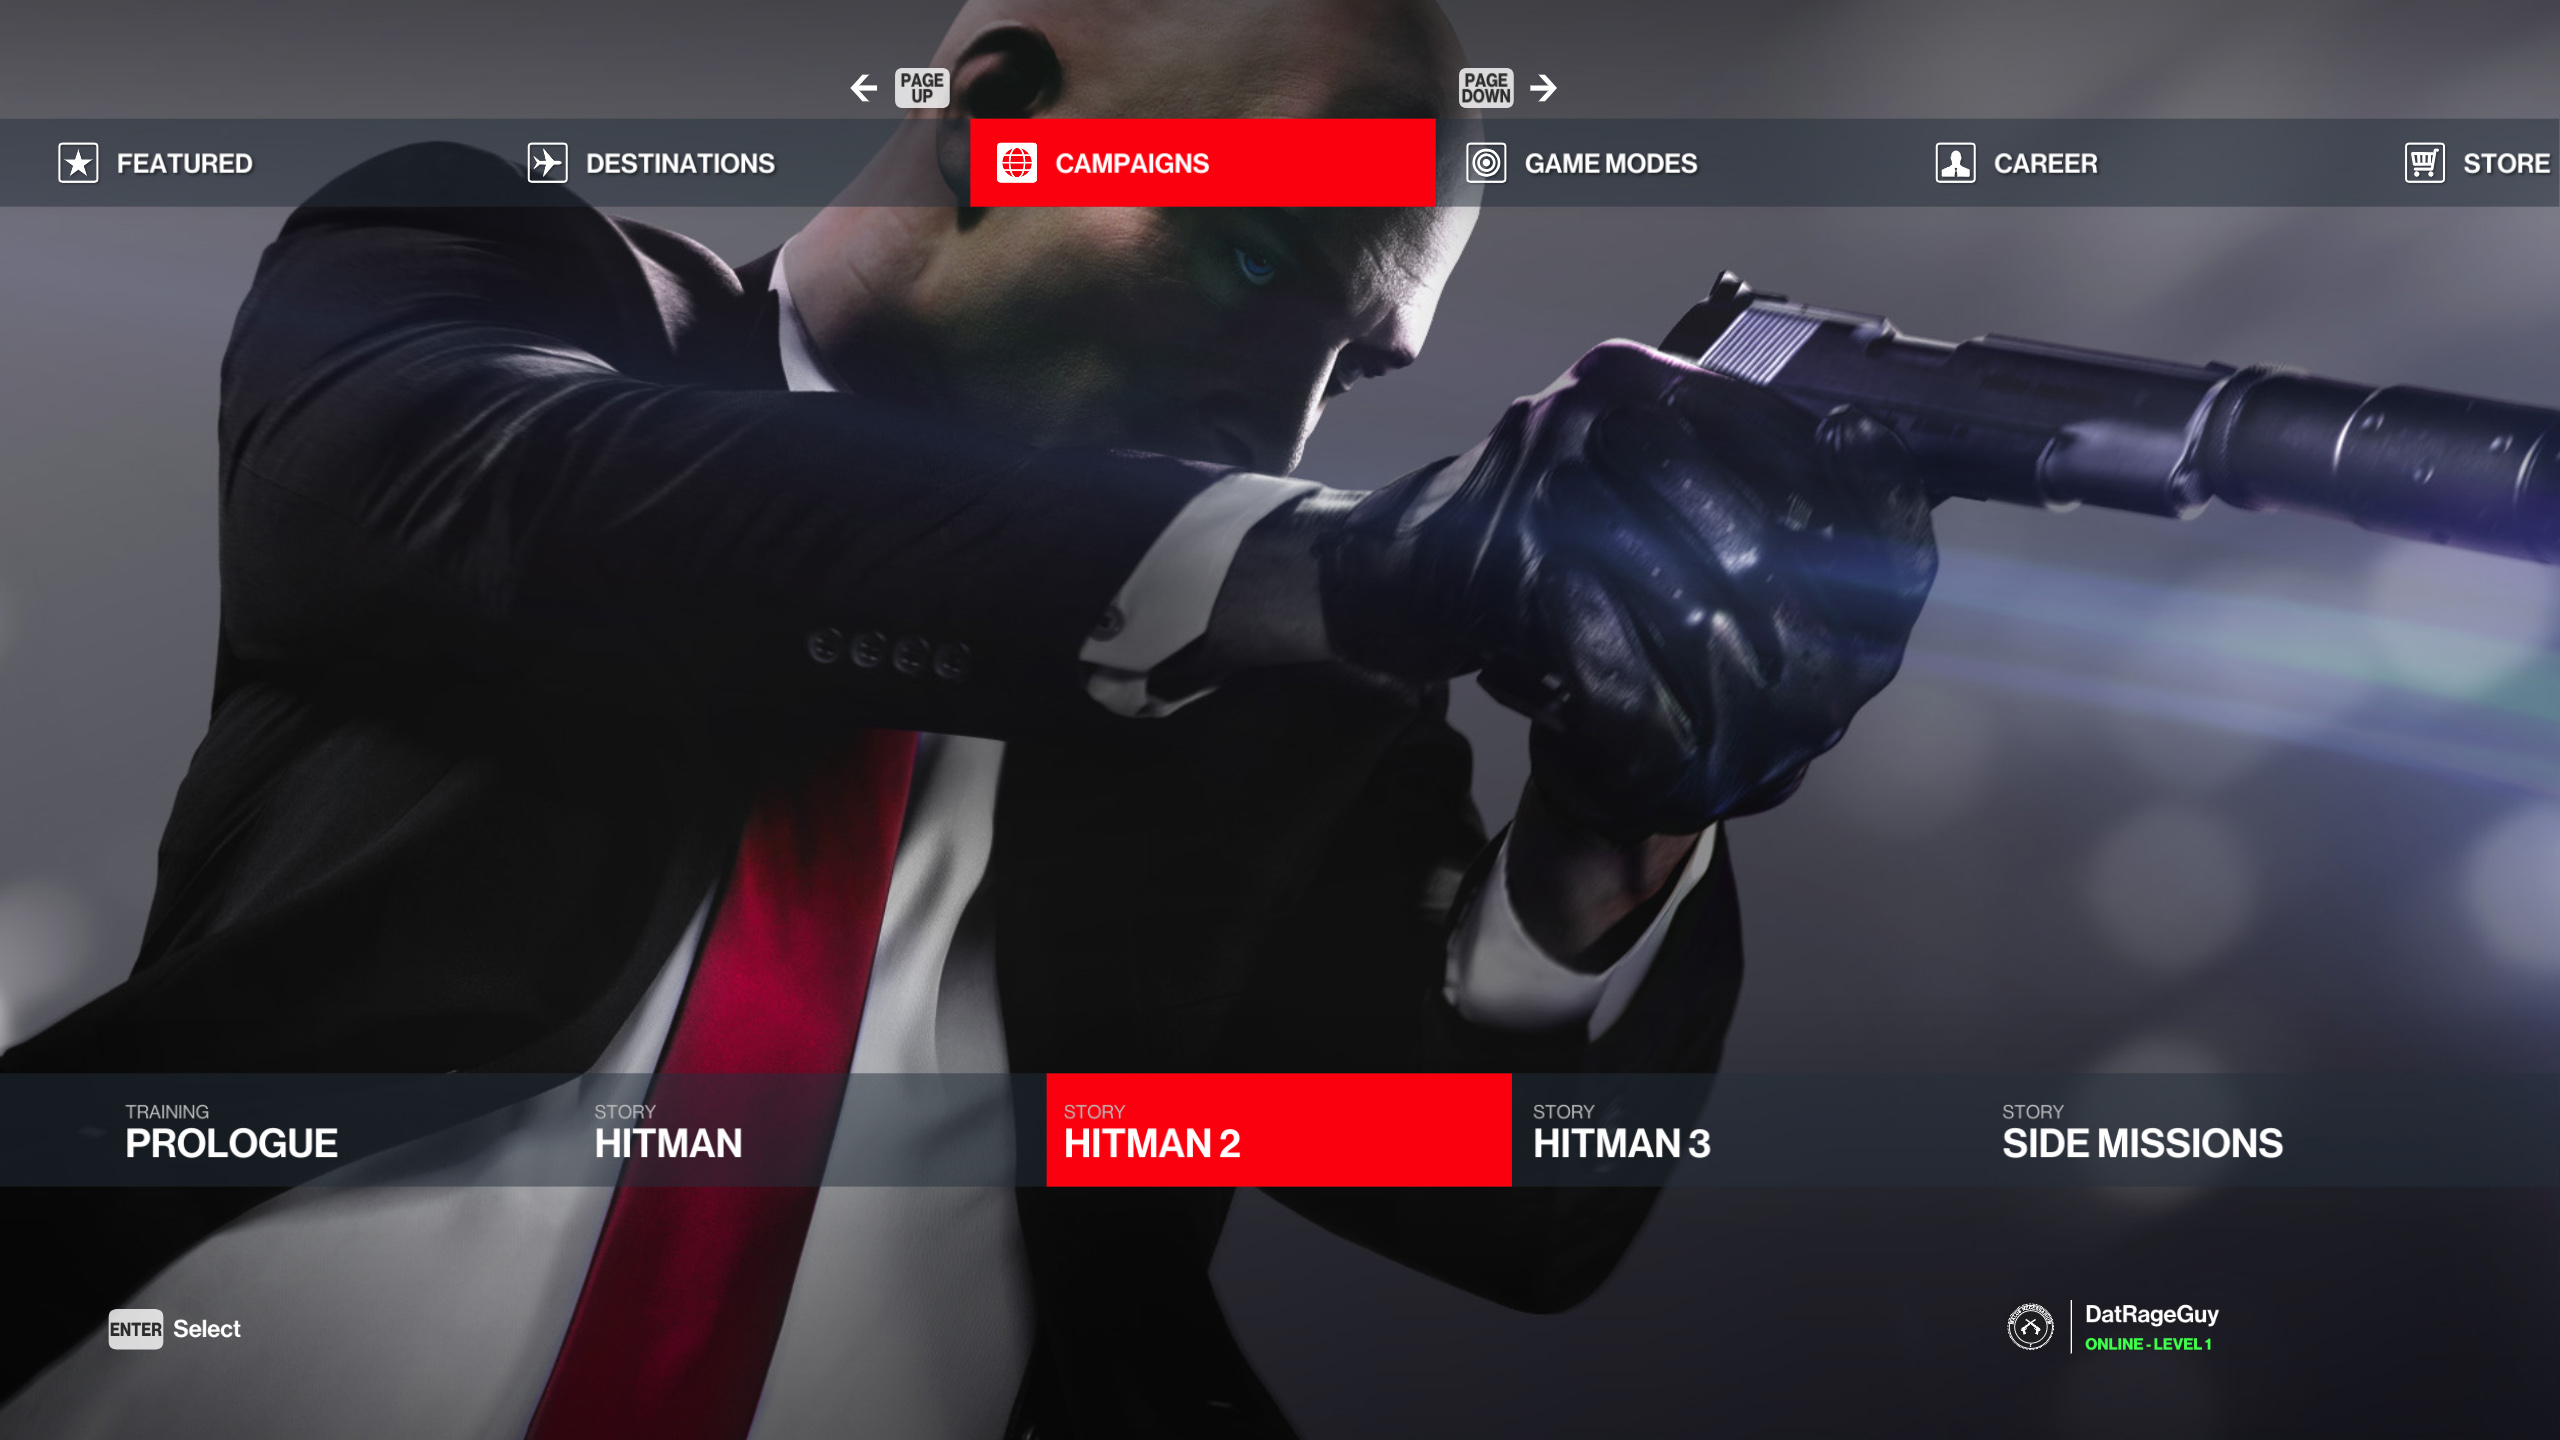 How to play Hitman 1 and Hitman 2 levels in Hitman 3